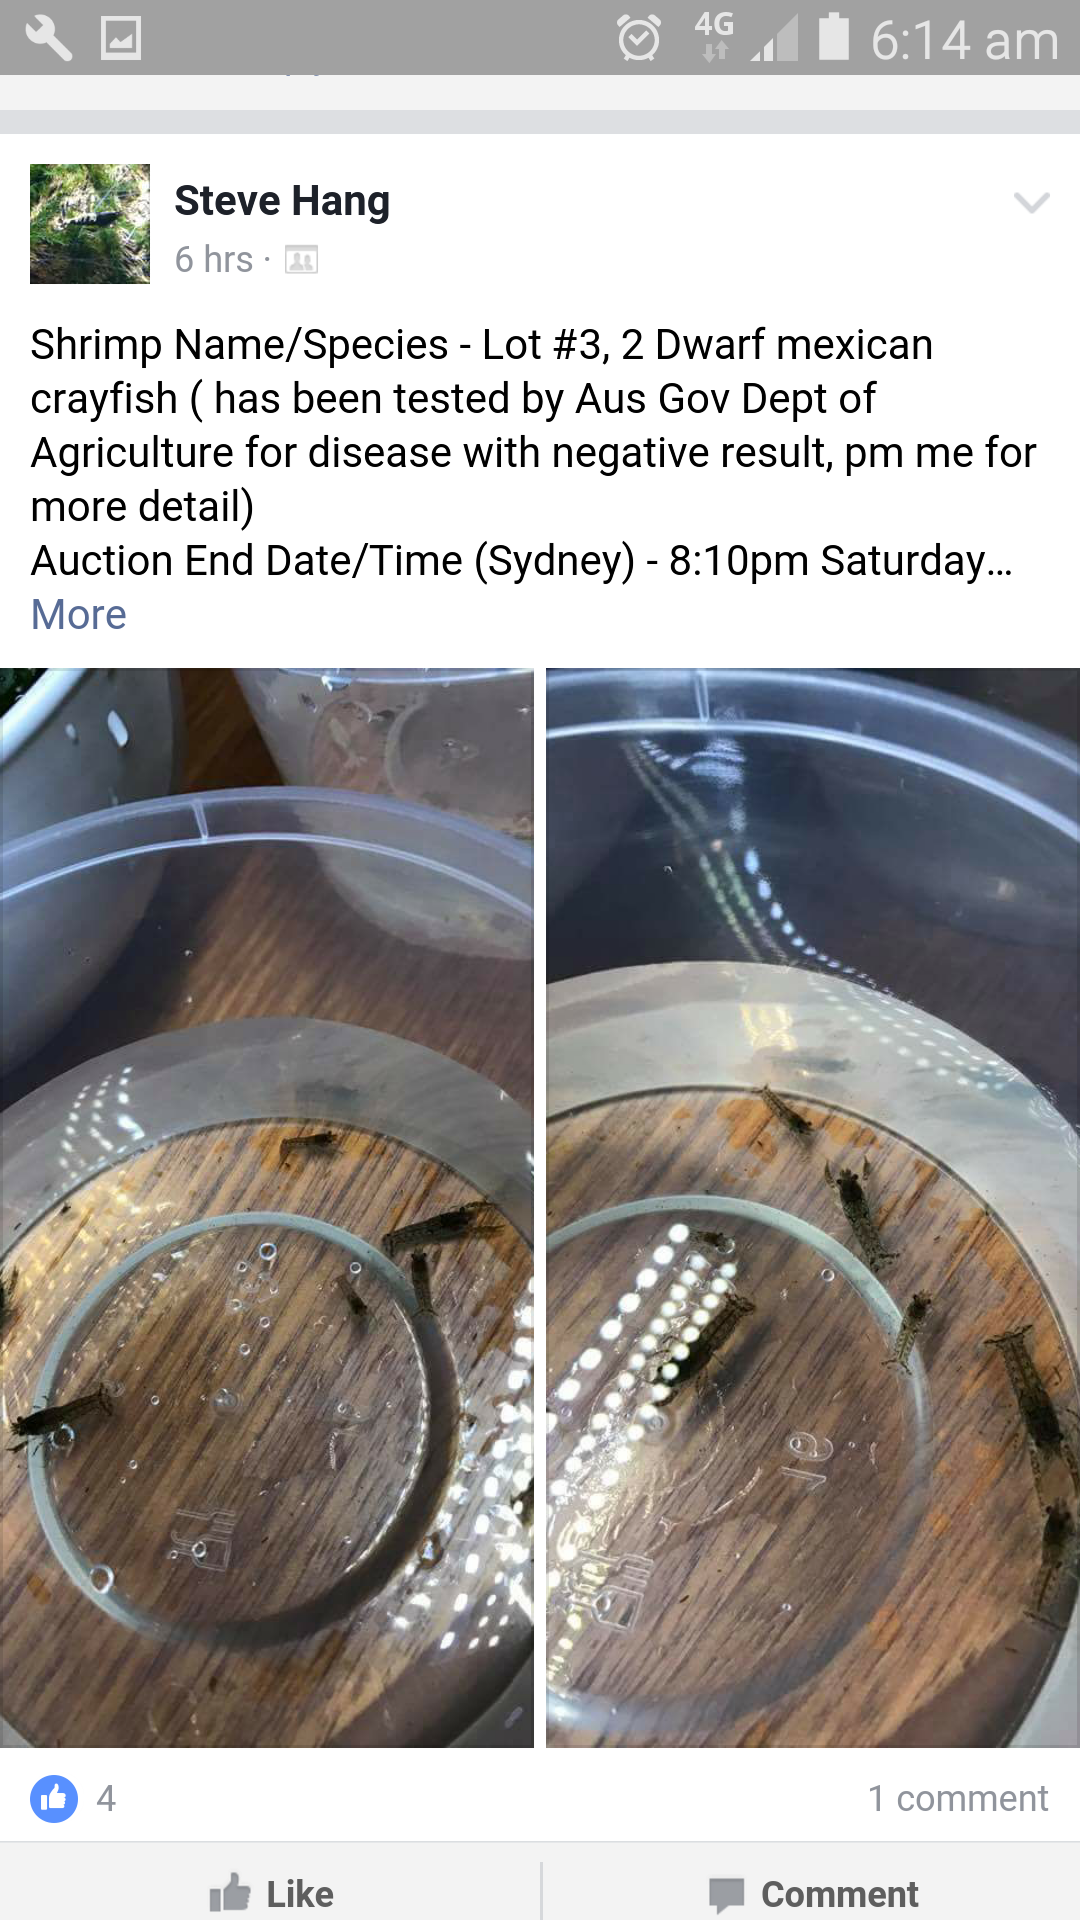 Exotic Dwarf Mexican Crayfish being sold of Facebook